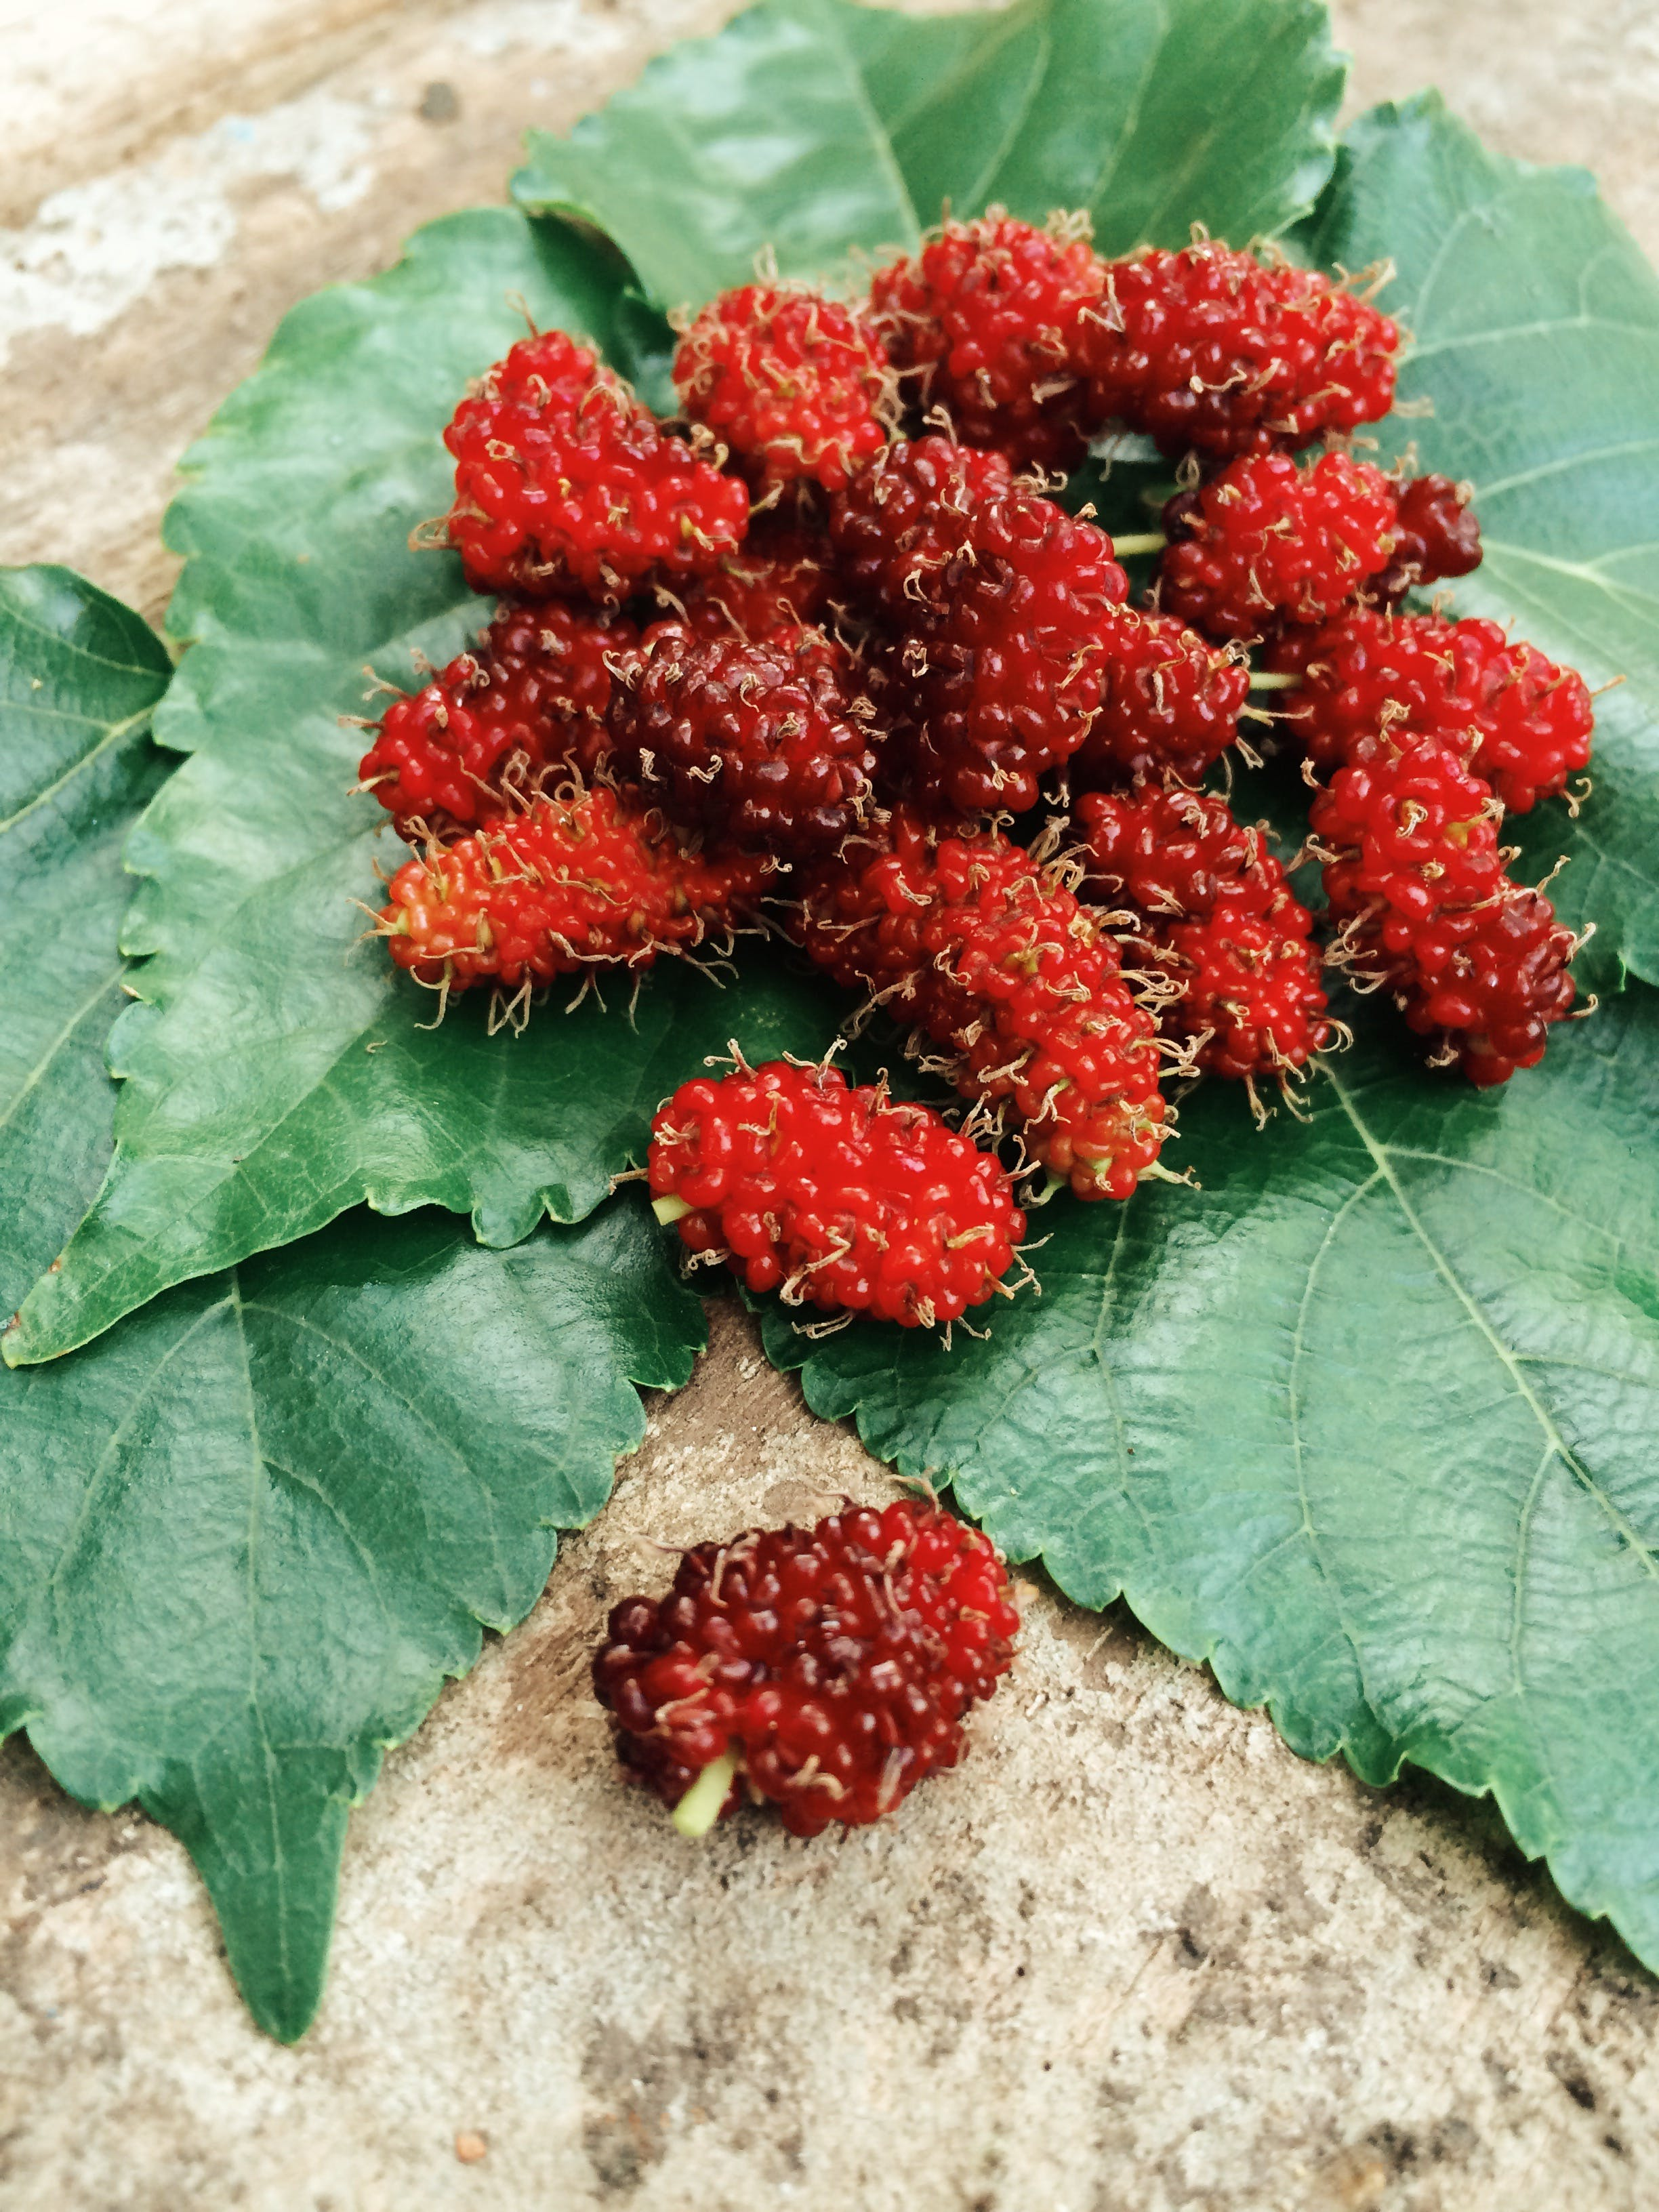 Free stock photo of fruit, leaf, mulberries, mulberry